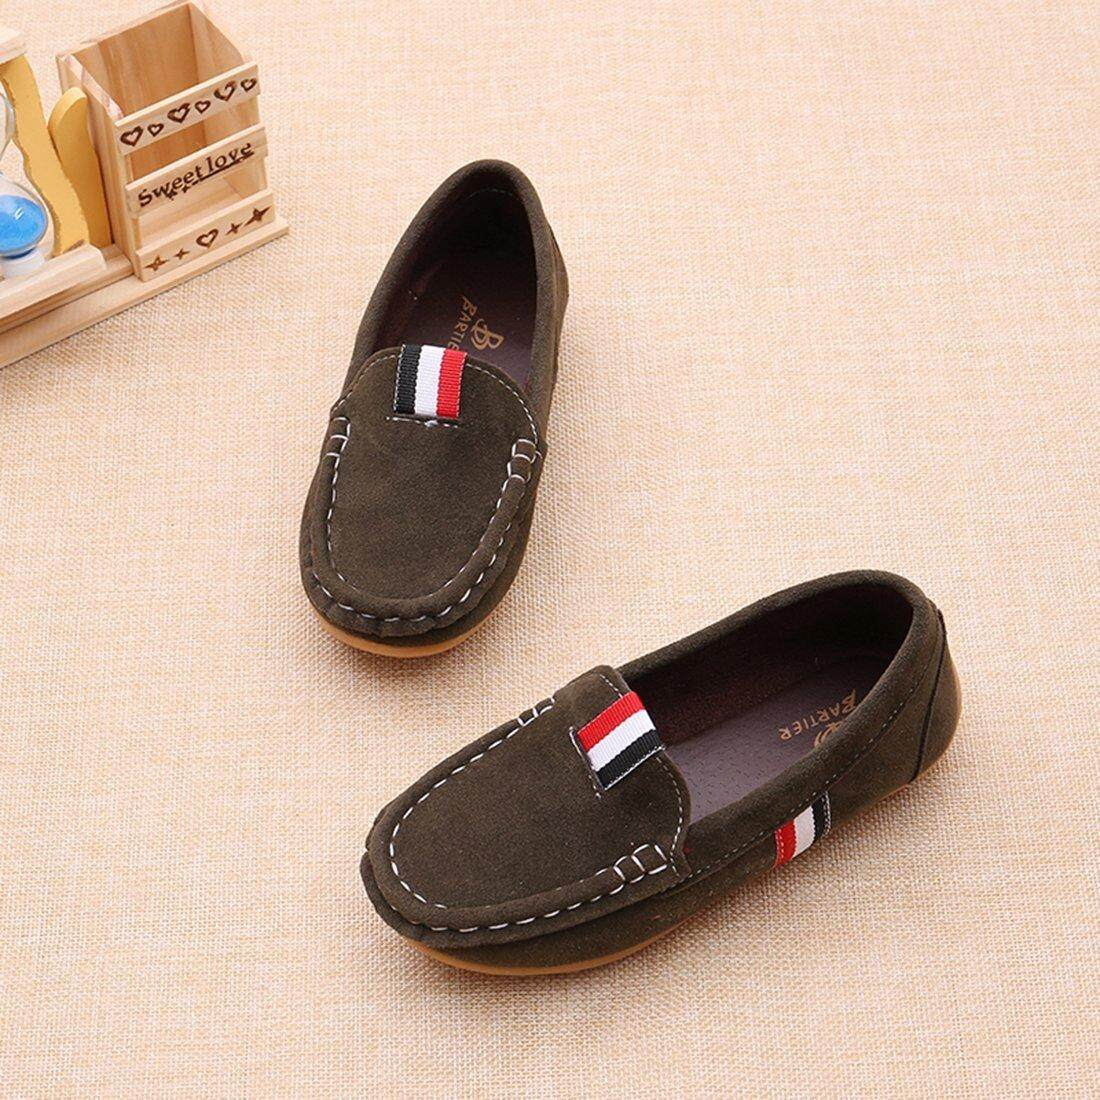 Girls' Boys' Kids Cute Suede Leather Slip-On Loafers Flats Casual Shoes - intl - 2